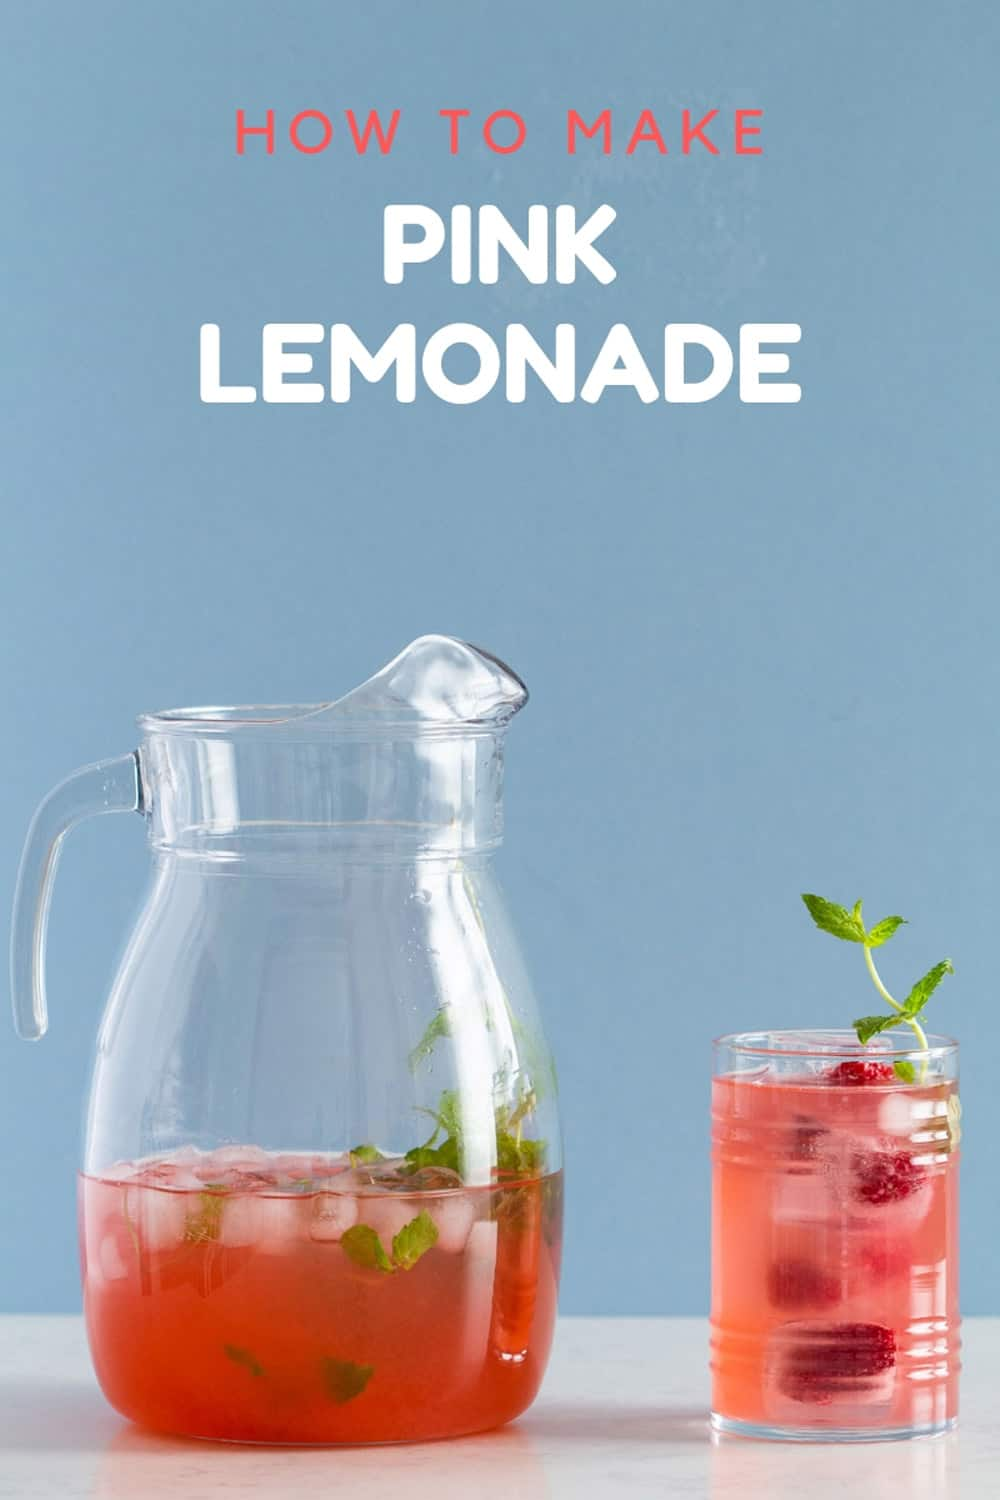 Pink Lemonade in Pitcher and Glass